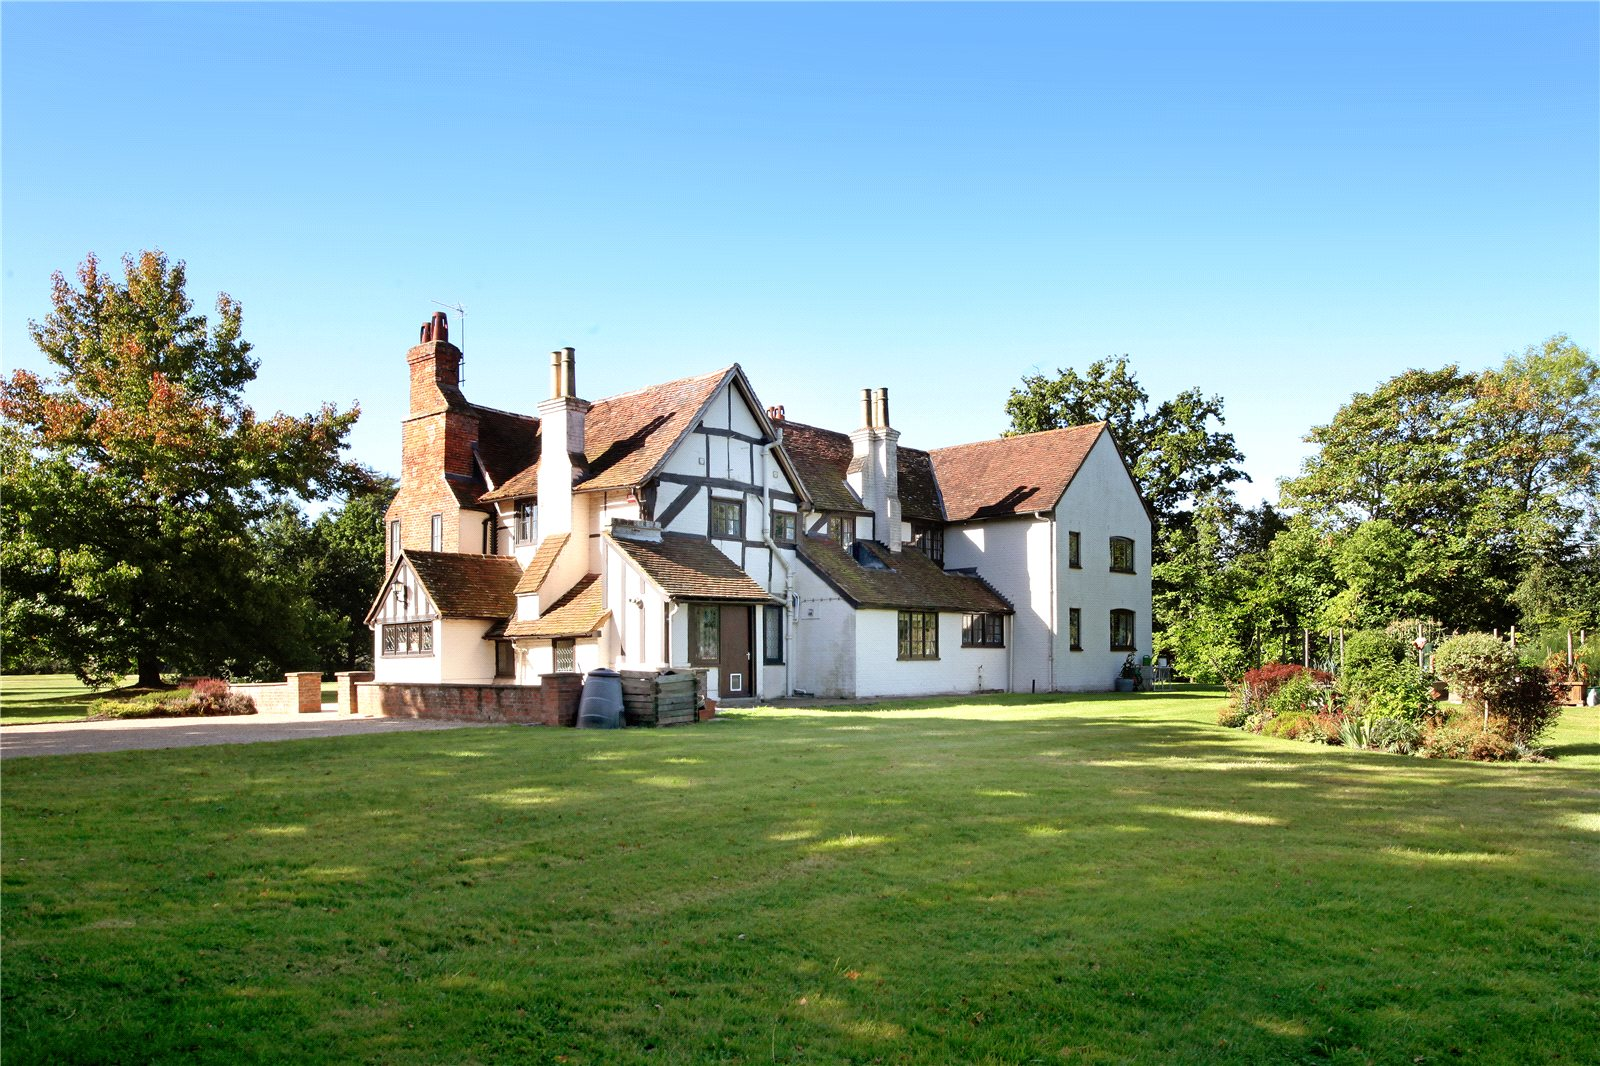 Single Family Home for Sale at Malt Hill, Warfield, Berkshire, RG42 Berkshire, England